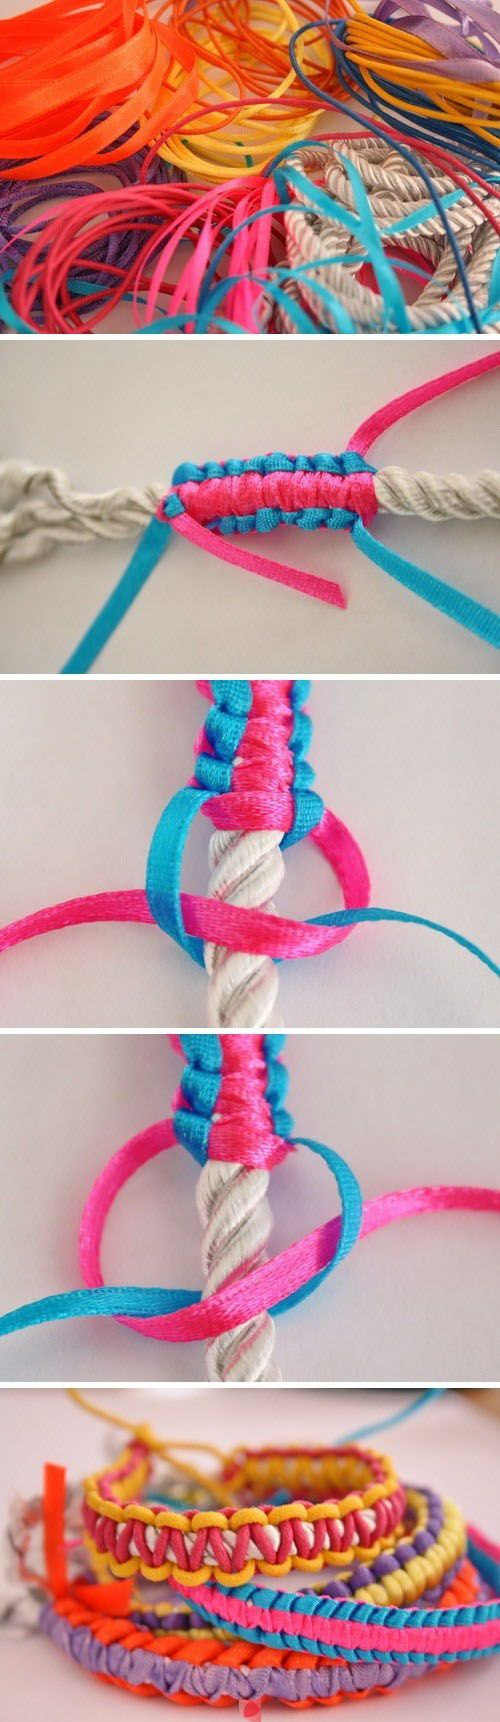 Friendship bracelets - I remember making these as a tween!